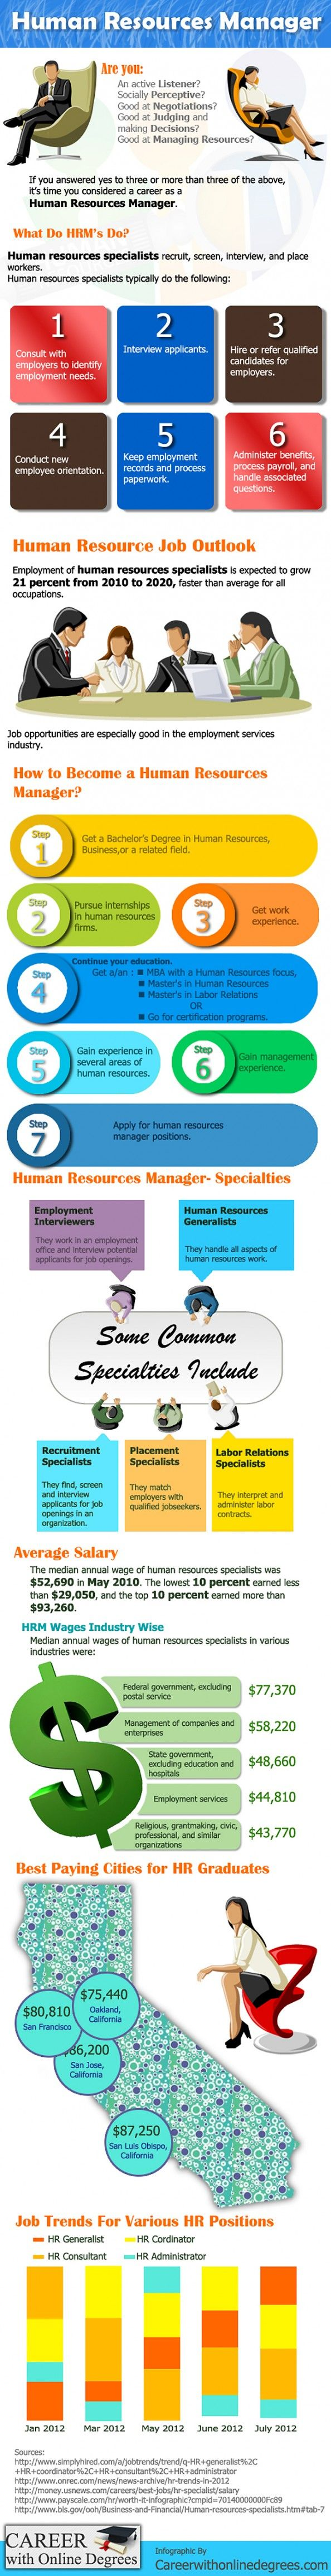 #HR staff...recruit or outsource with Doherty HRO? Depends...this might help